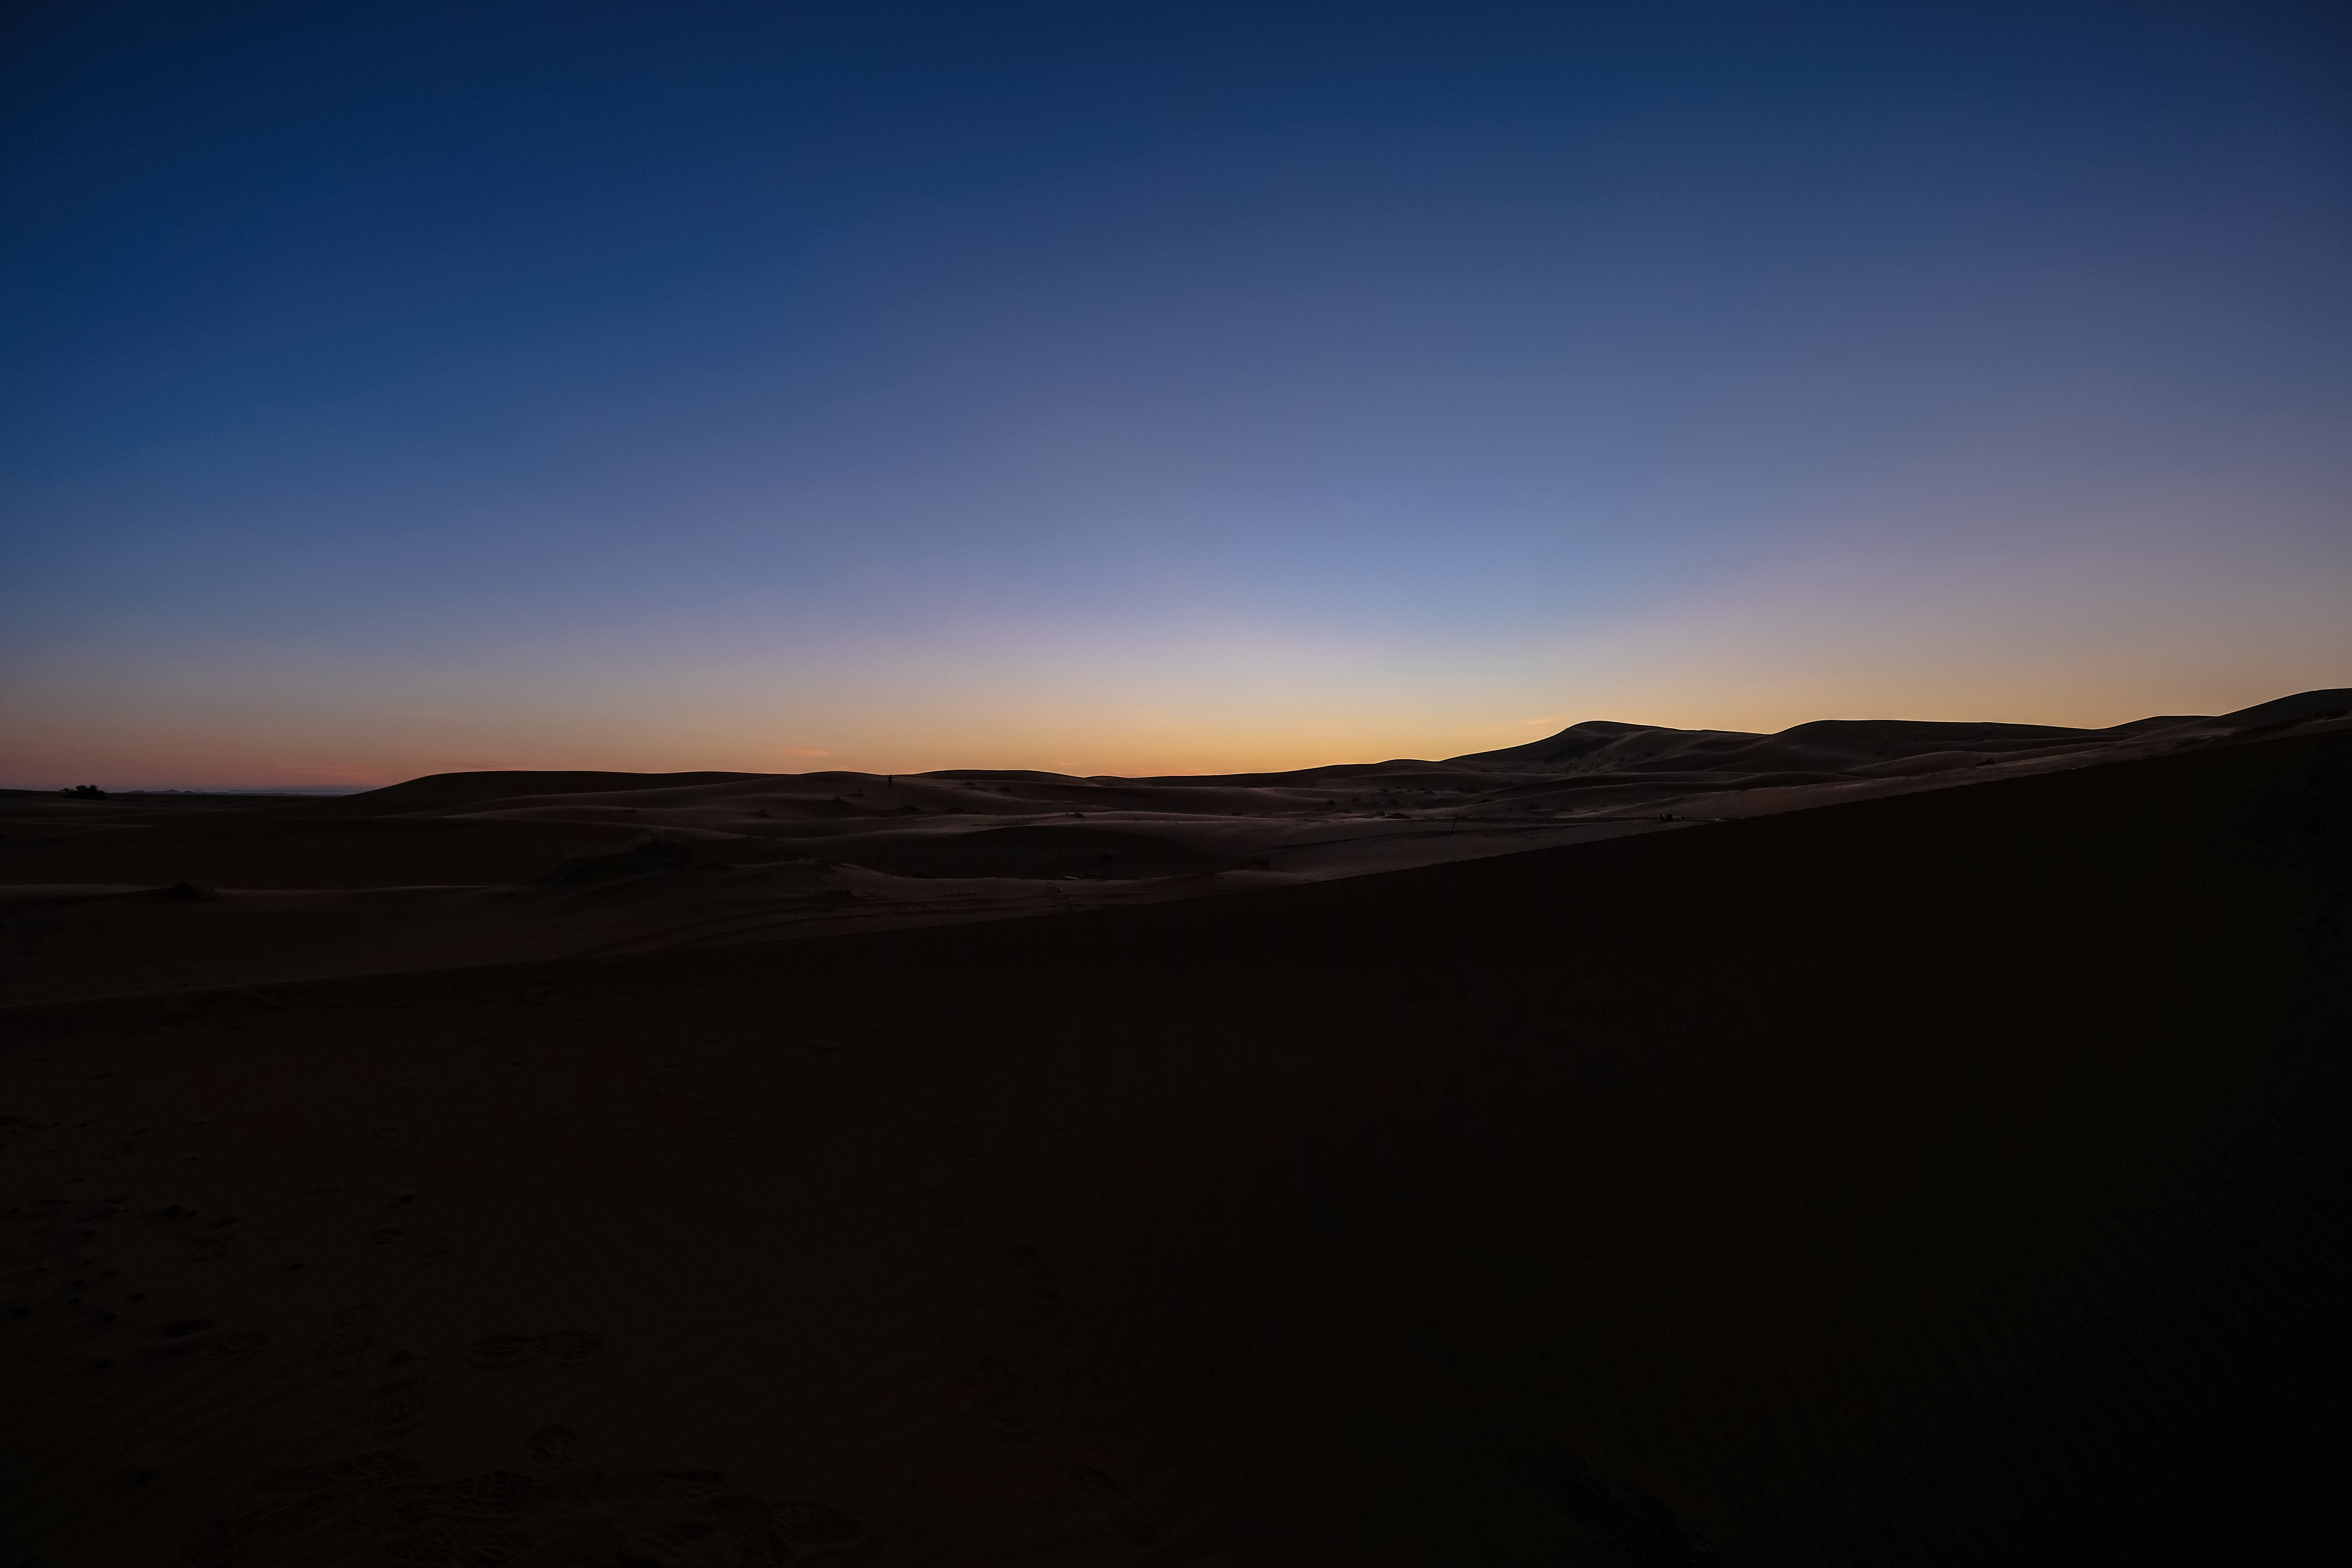 Silhouette Photography of Desert